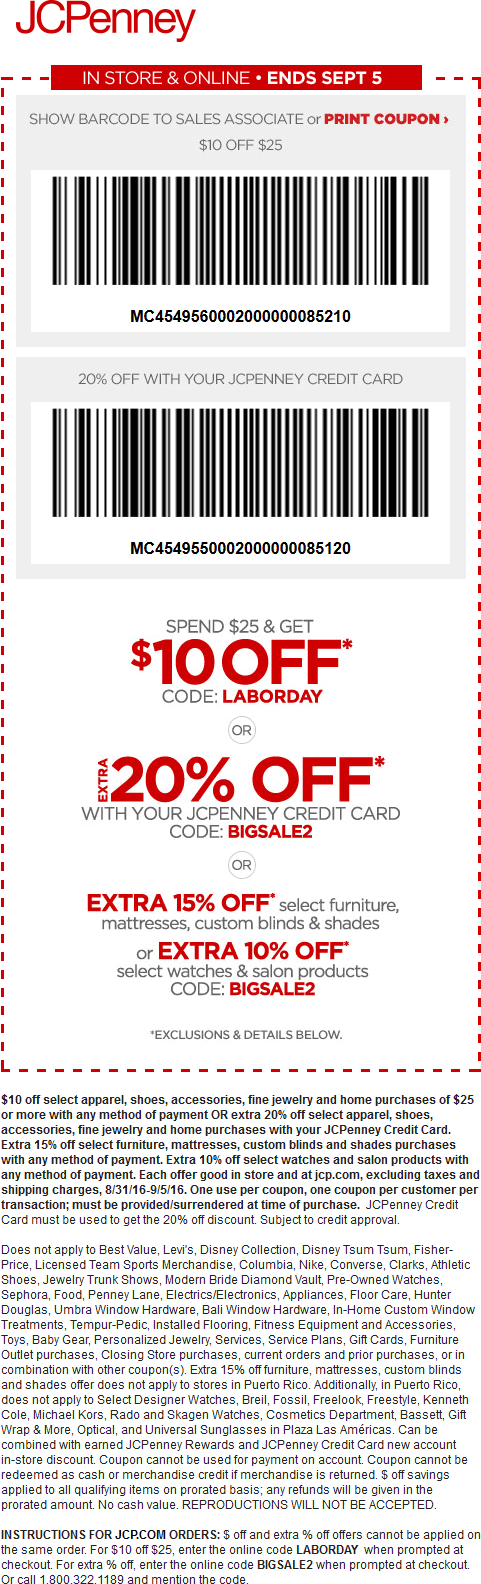 JCPenney Coupon May 2017 $10 off $25 at JCPenney, or online via promo code LABORDAY